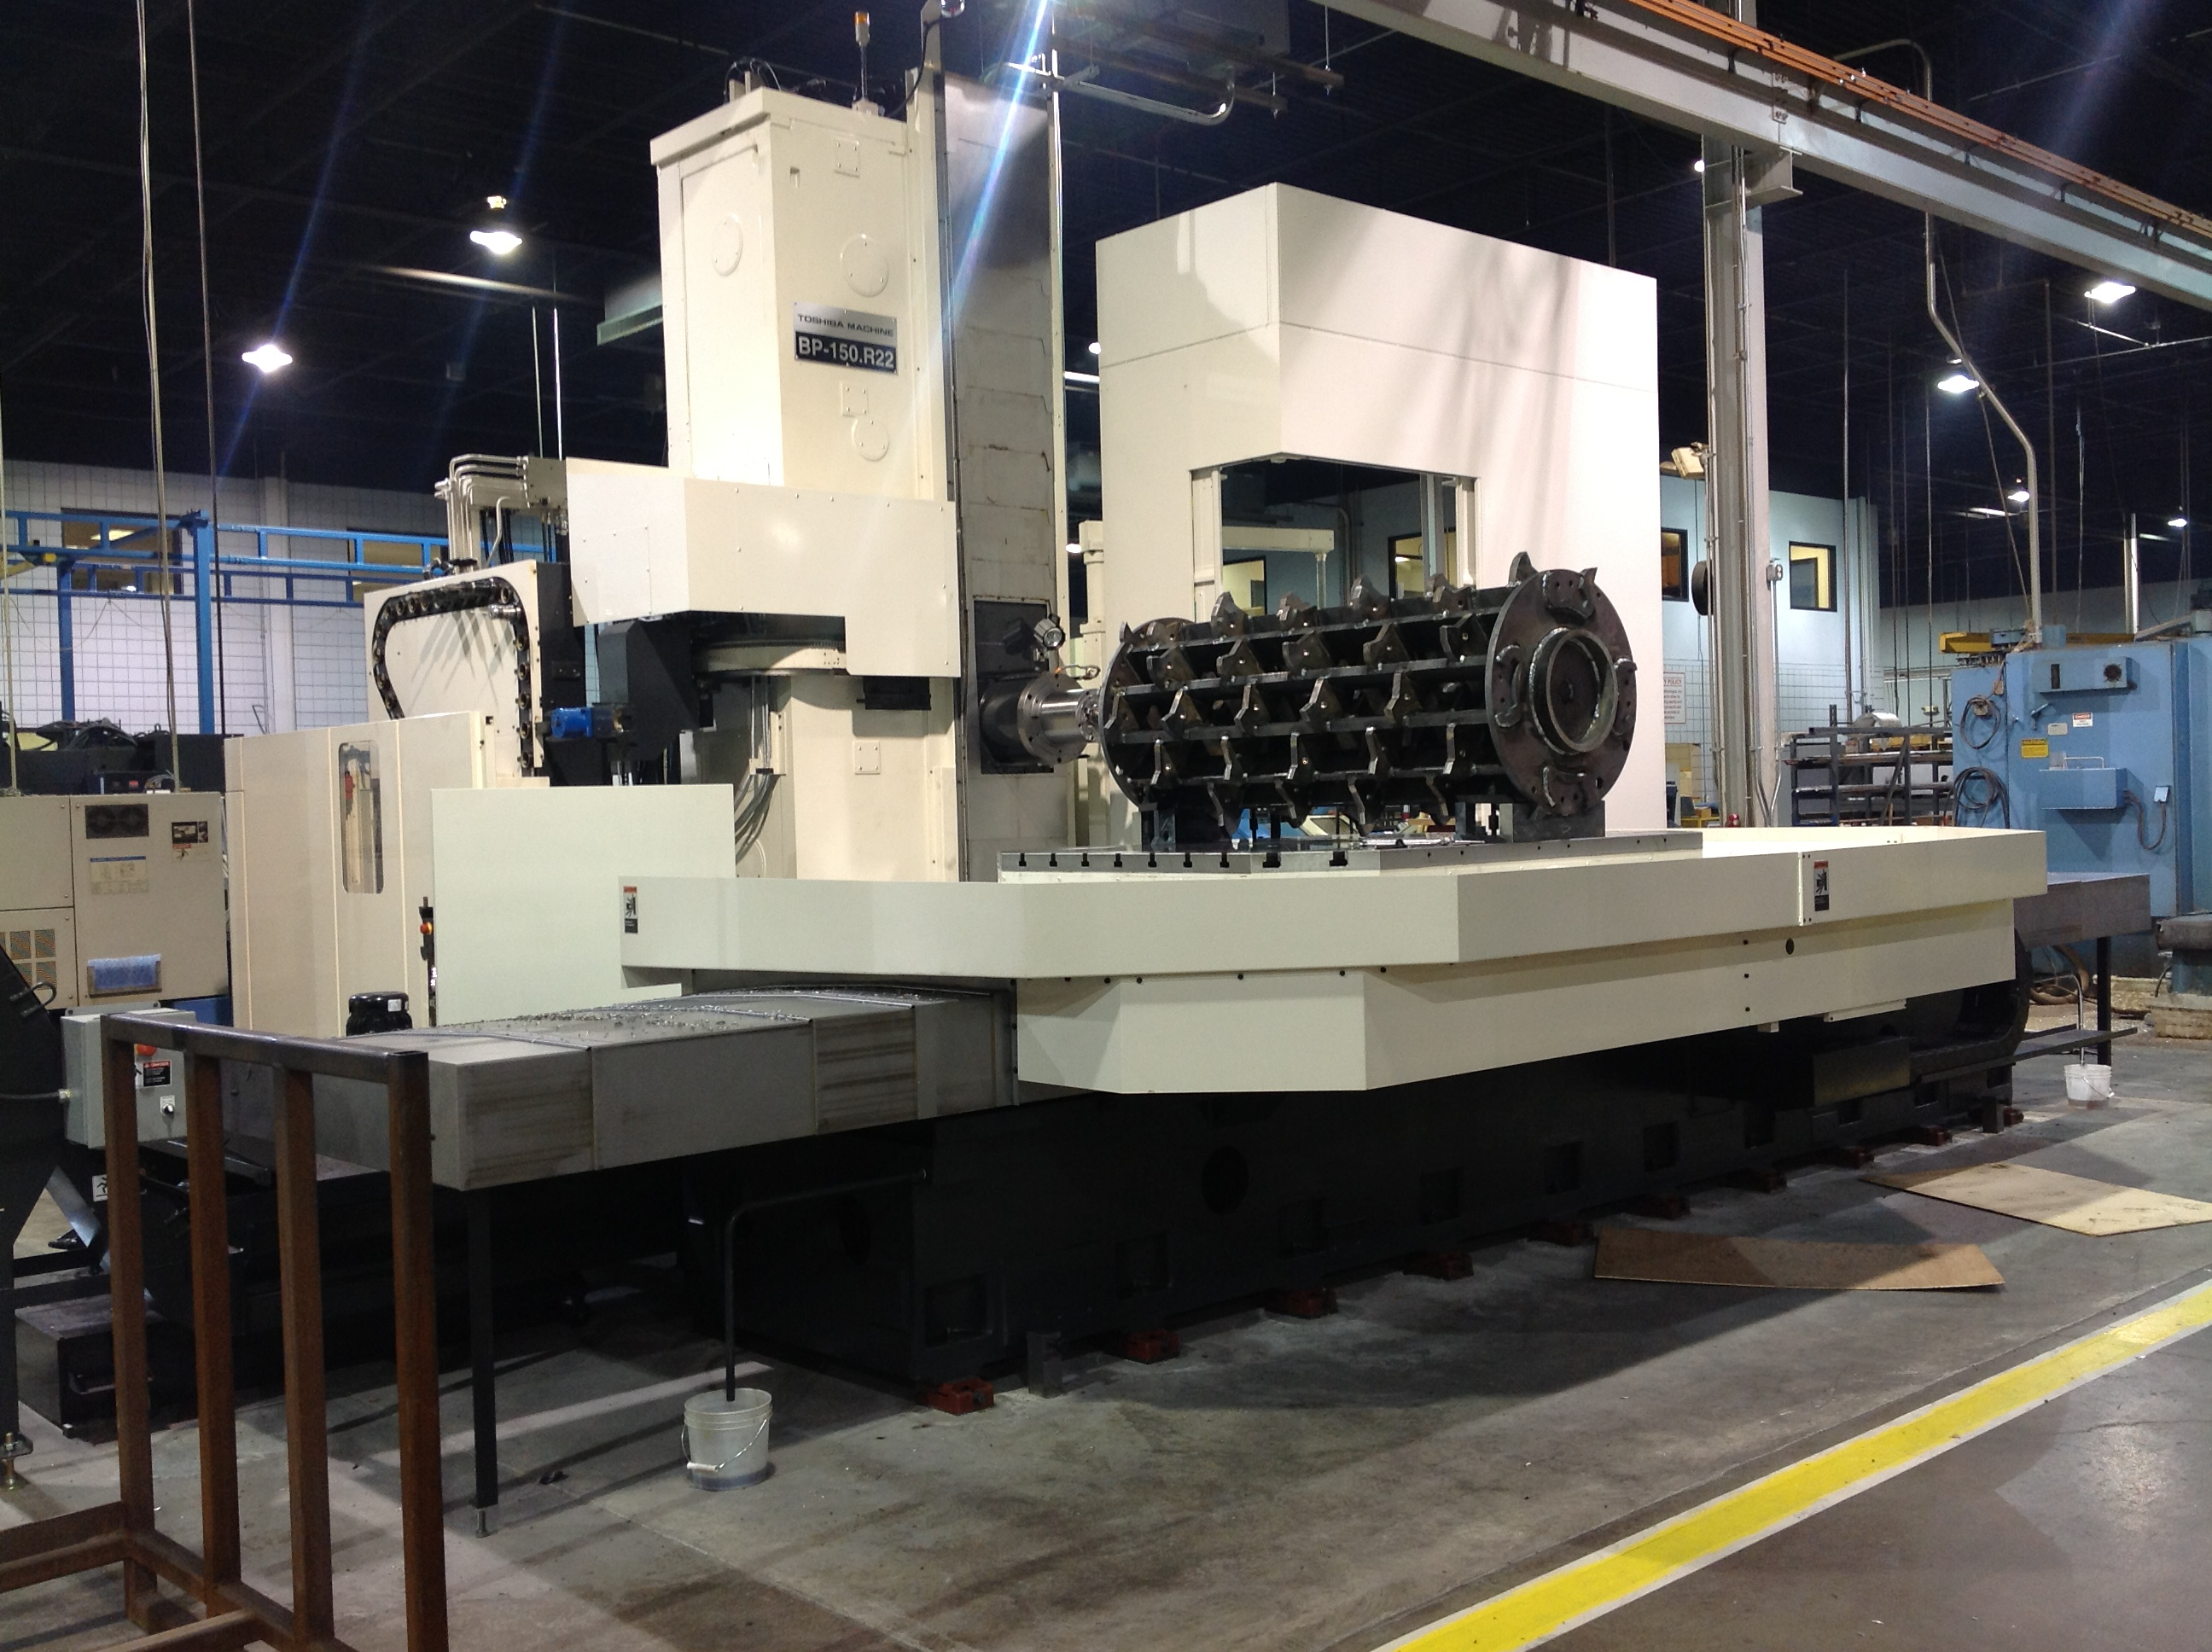 Stillwater 187 New Acquisition Toshiba Bp 150 R22 Cnc